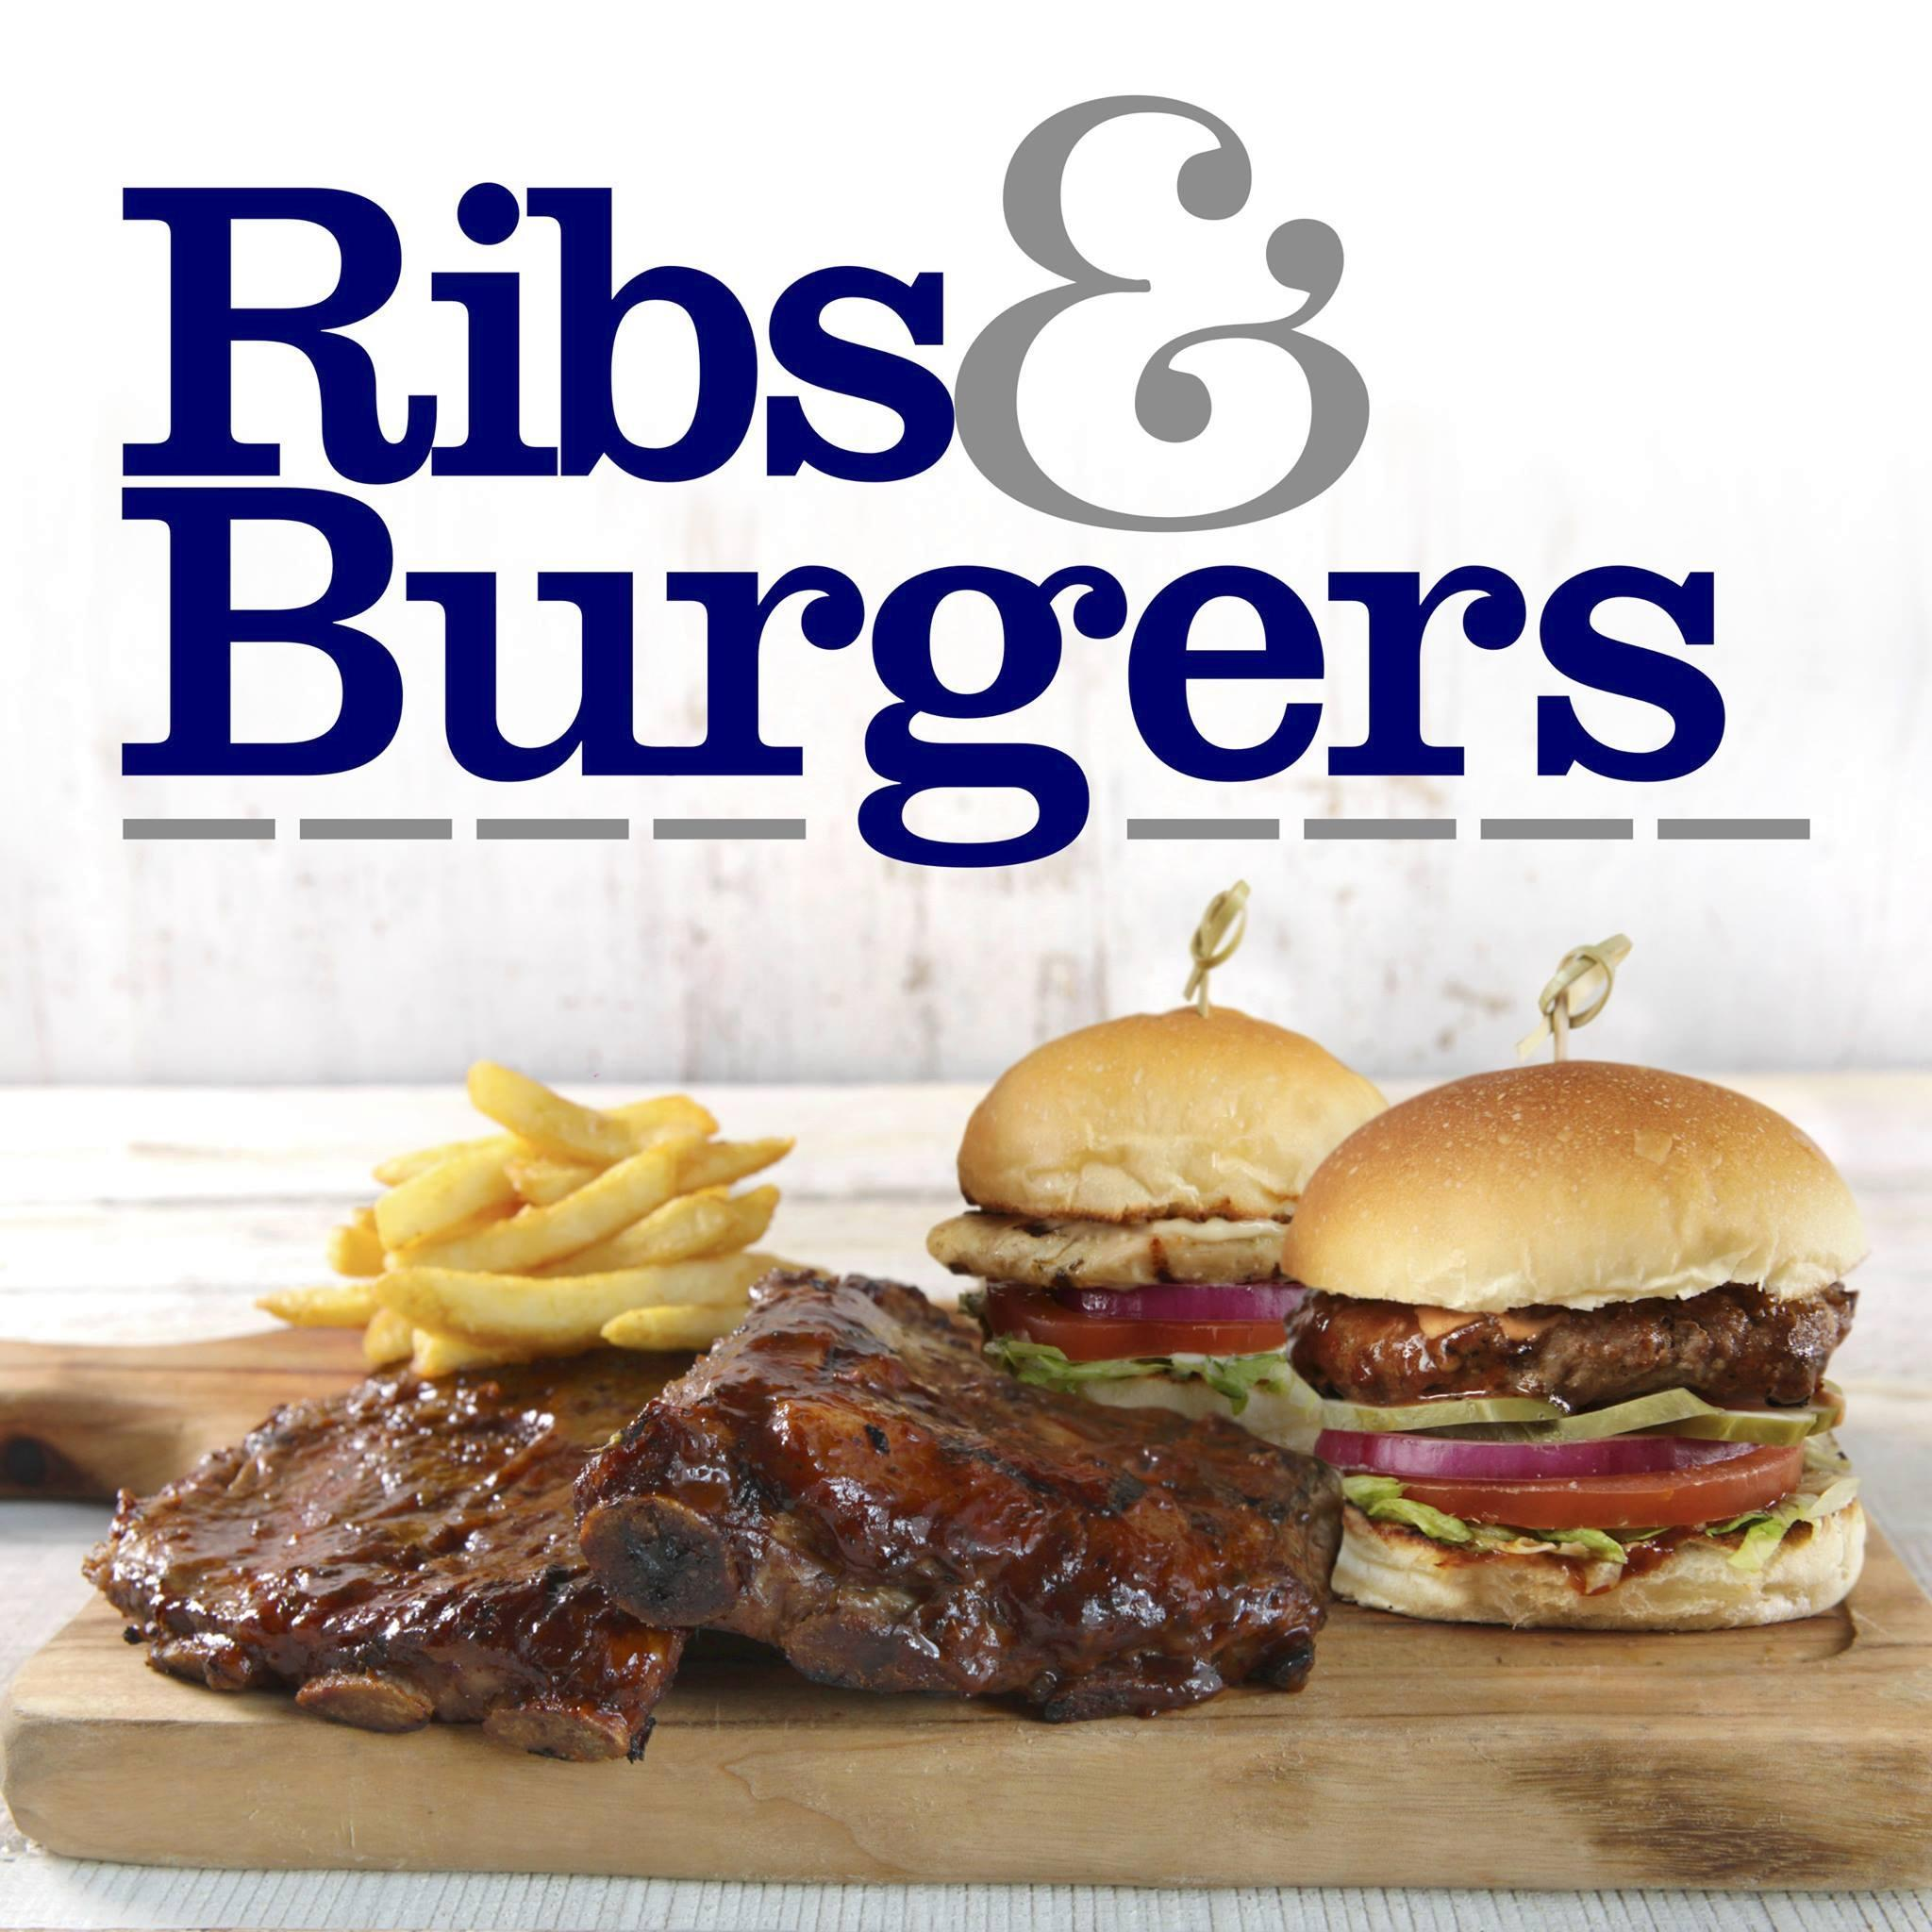 ribs burgers usa ribsburgersusa twitter. Black Bedroom Furniture Sets. Home Design Ideas